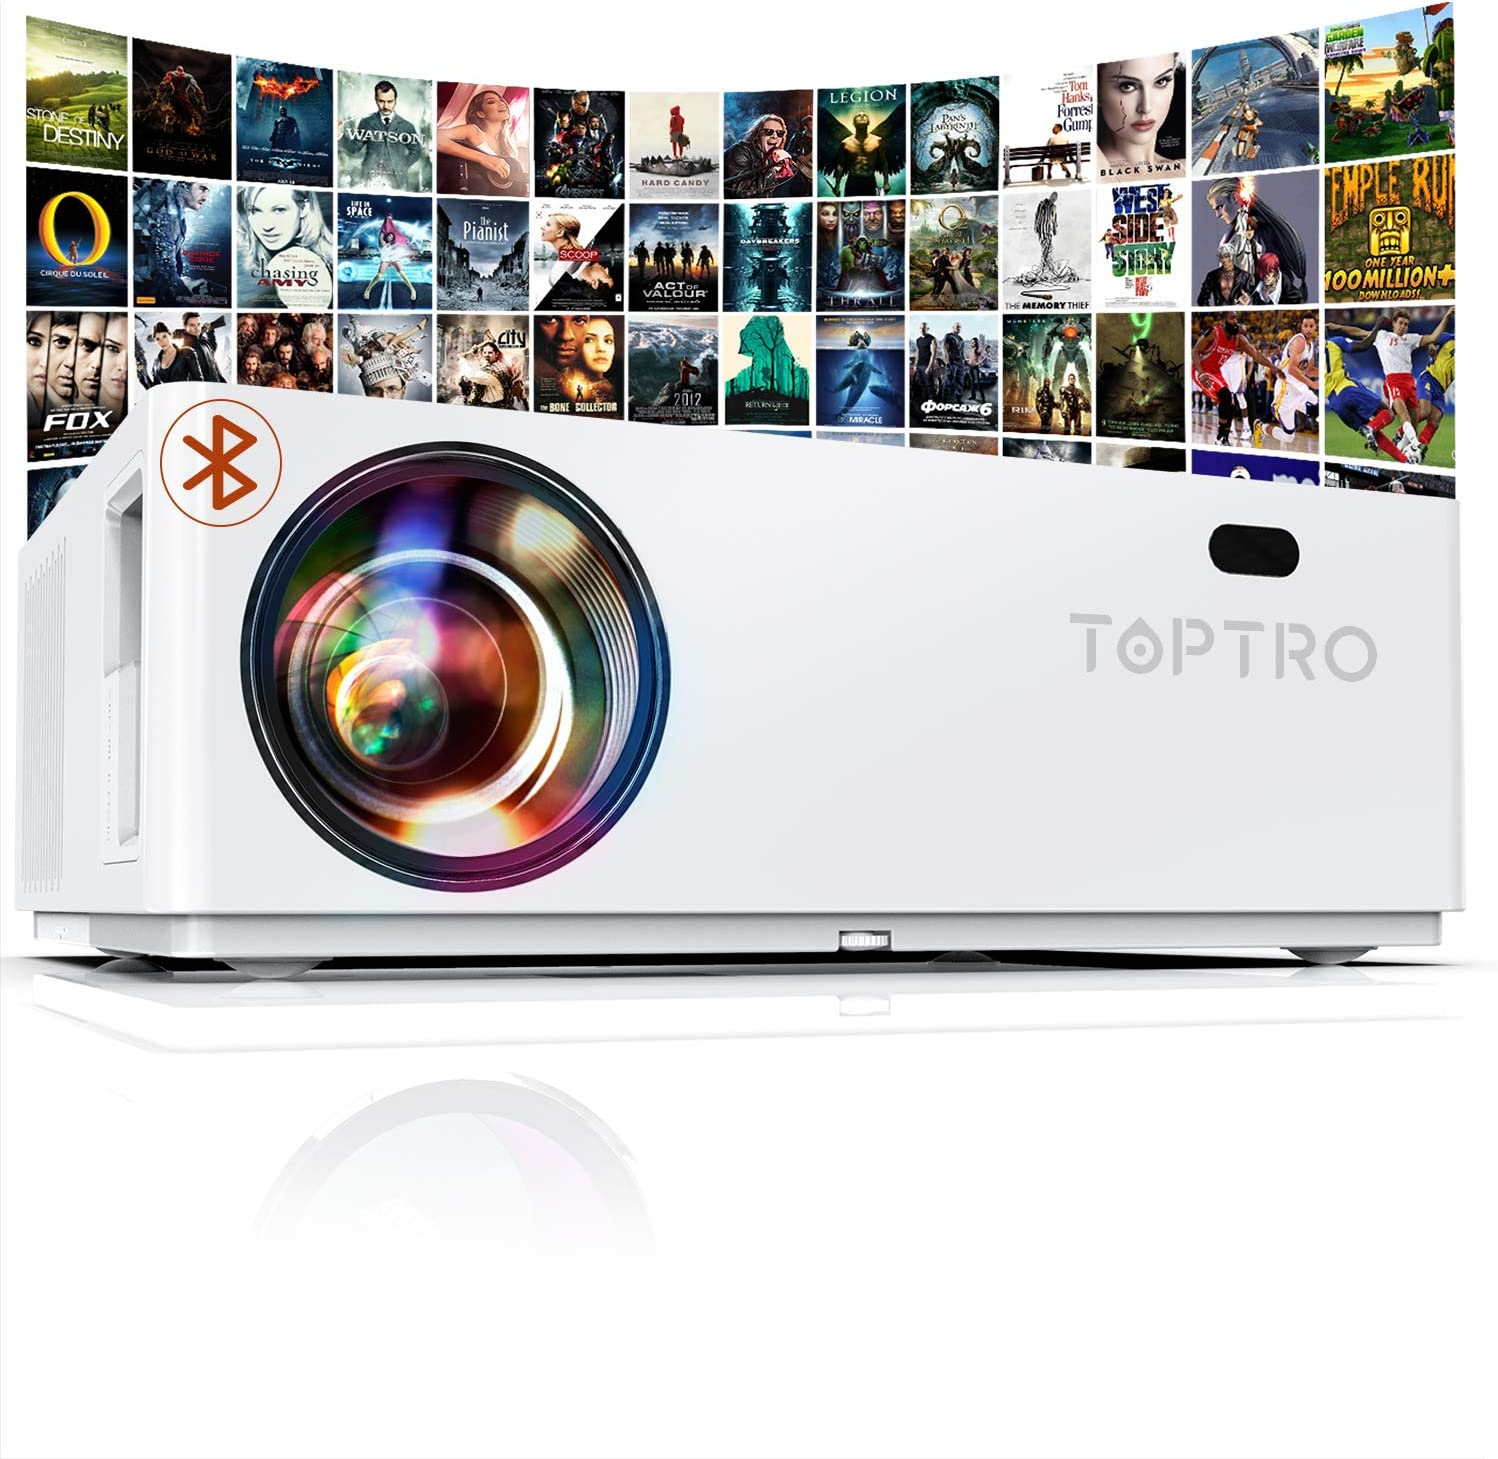 TOPTRO Projector 7200 Lux 350 inches Keystone Correction ± 50